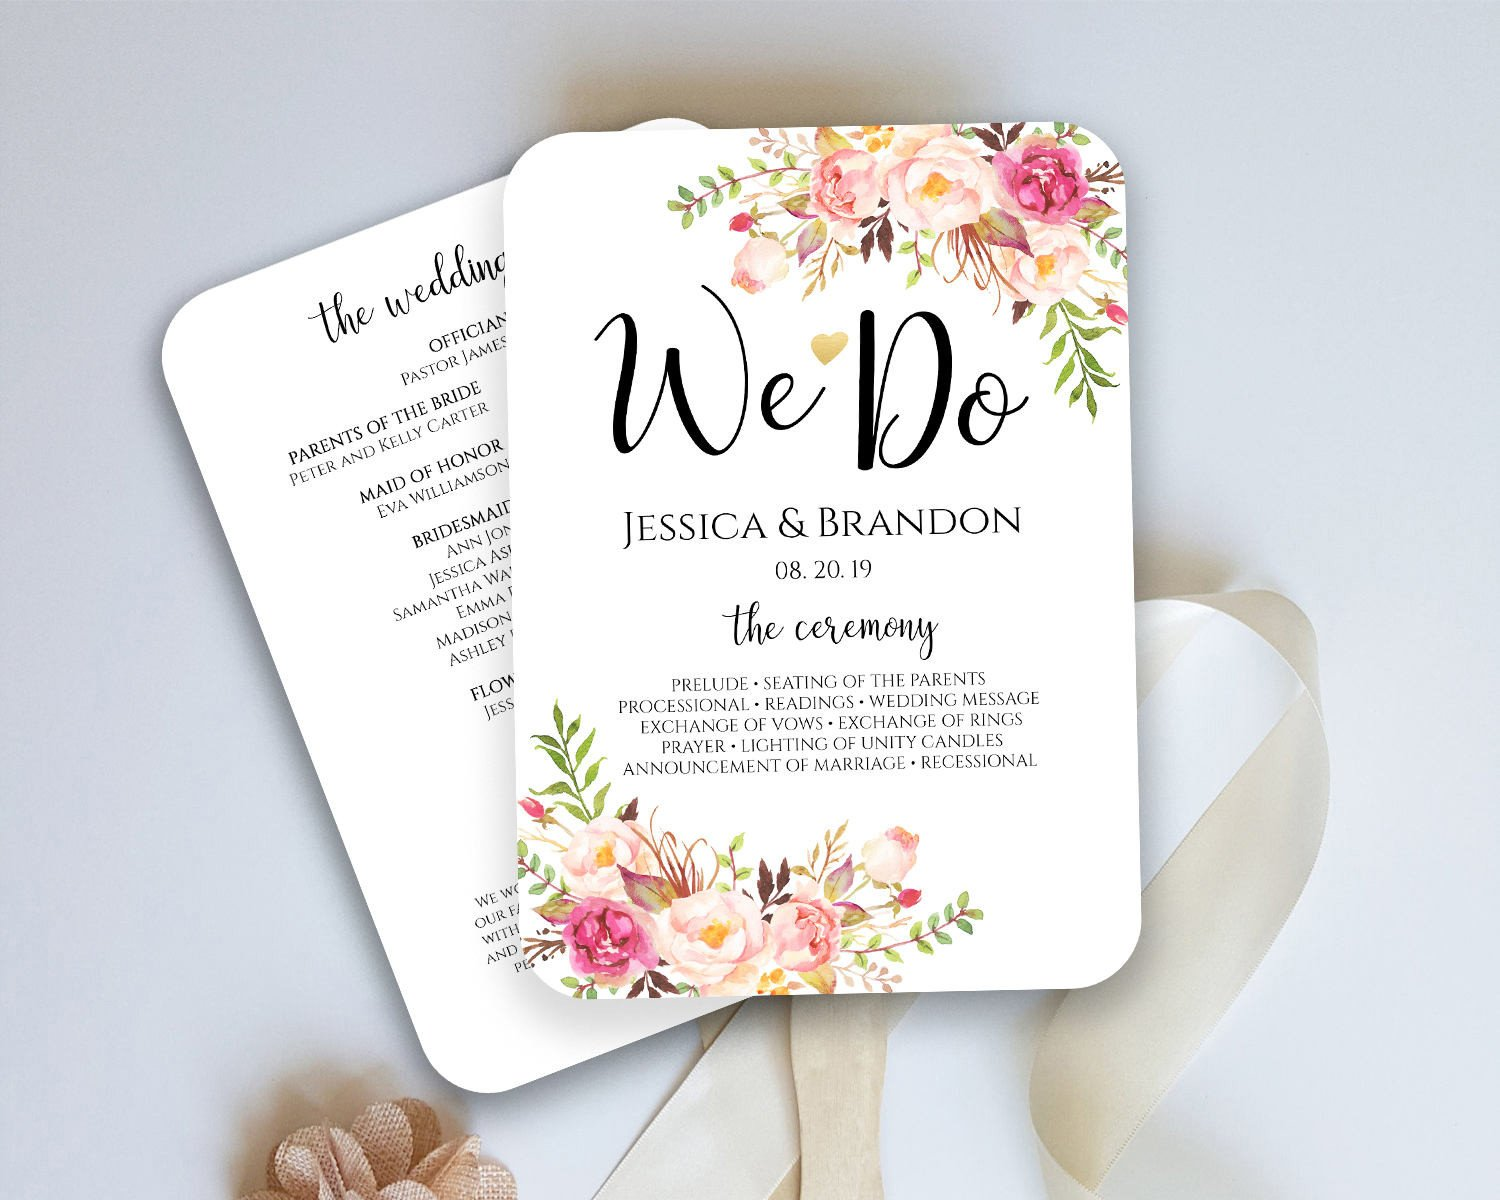 Wedding Programs Fans Templates Wedding Program Fan Template Ceremony Program Fan Wedding